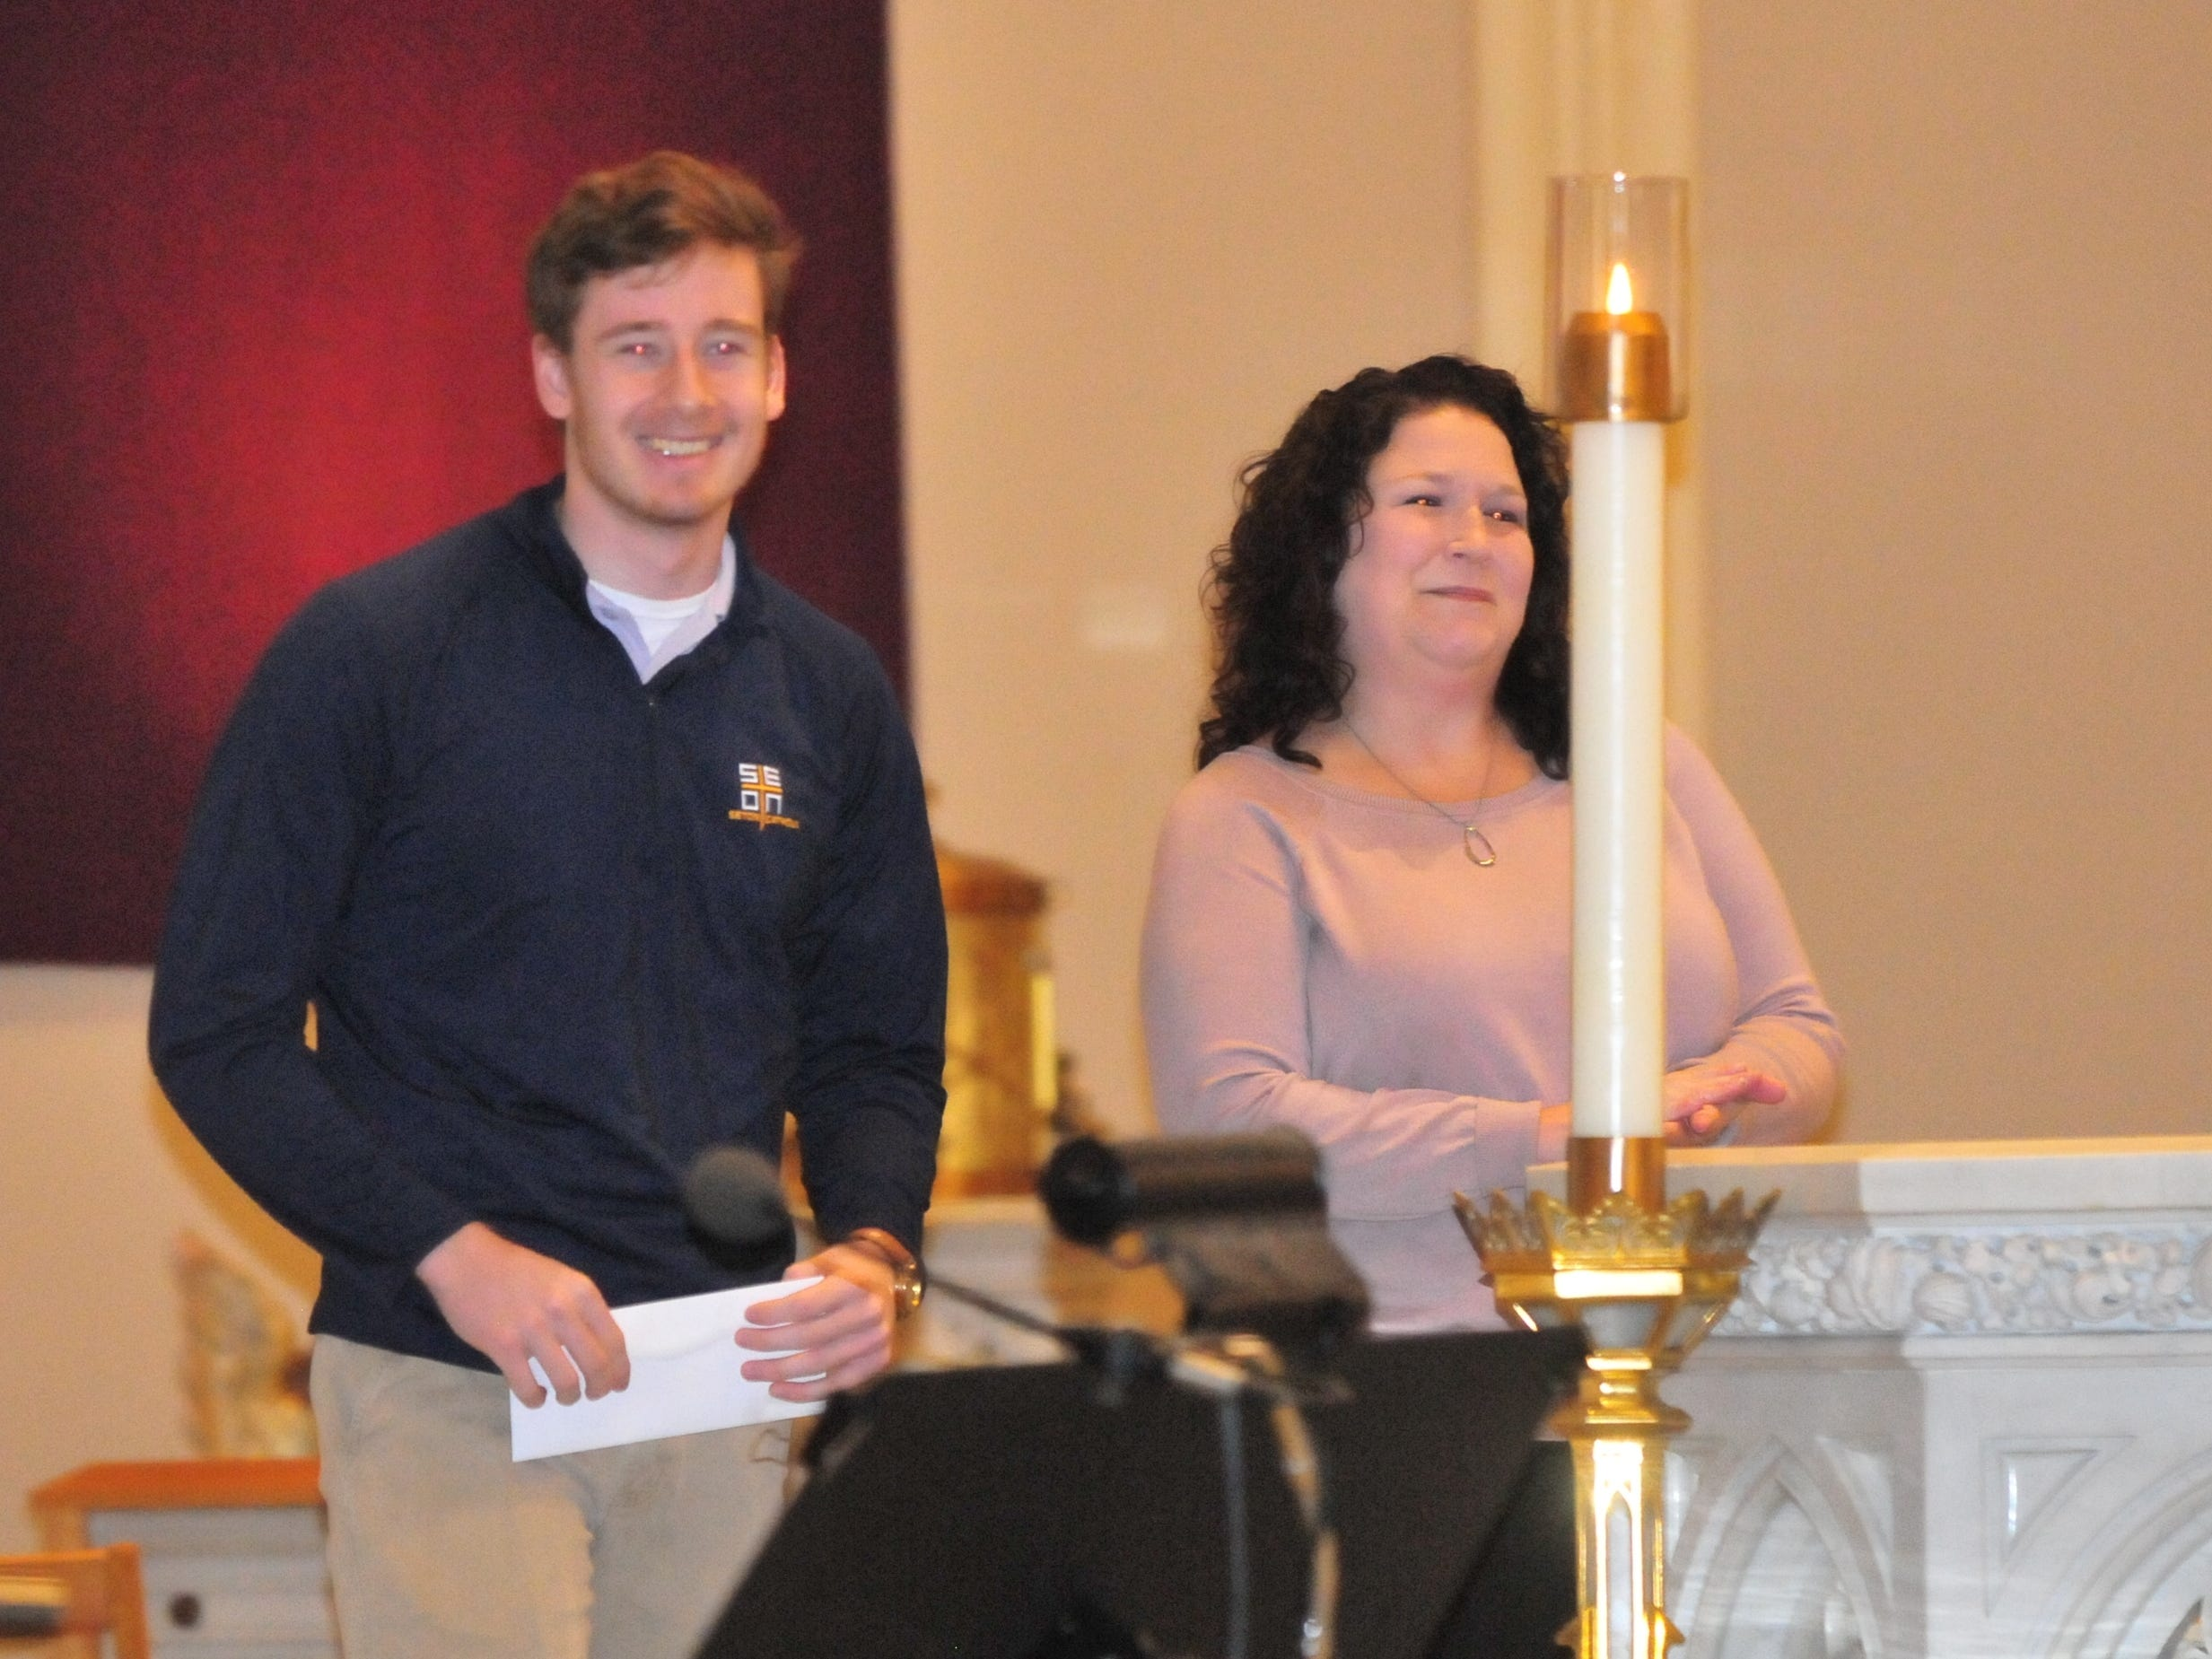 Seton Catholic senior Joseph Lahmann, left, with Wayne County Foundation Program Officer Lisa Bates after finding out he won the Lilly Endowment Community Scholarship after morning mass at St. Andrew's Catholic Church in Richmond Tuesday, Dec. 11, 2018.